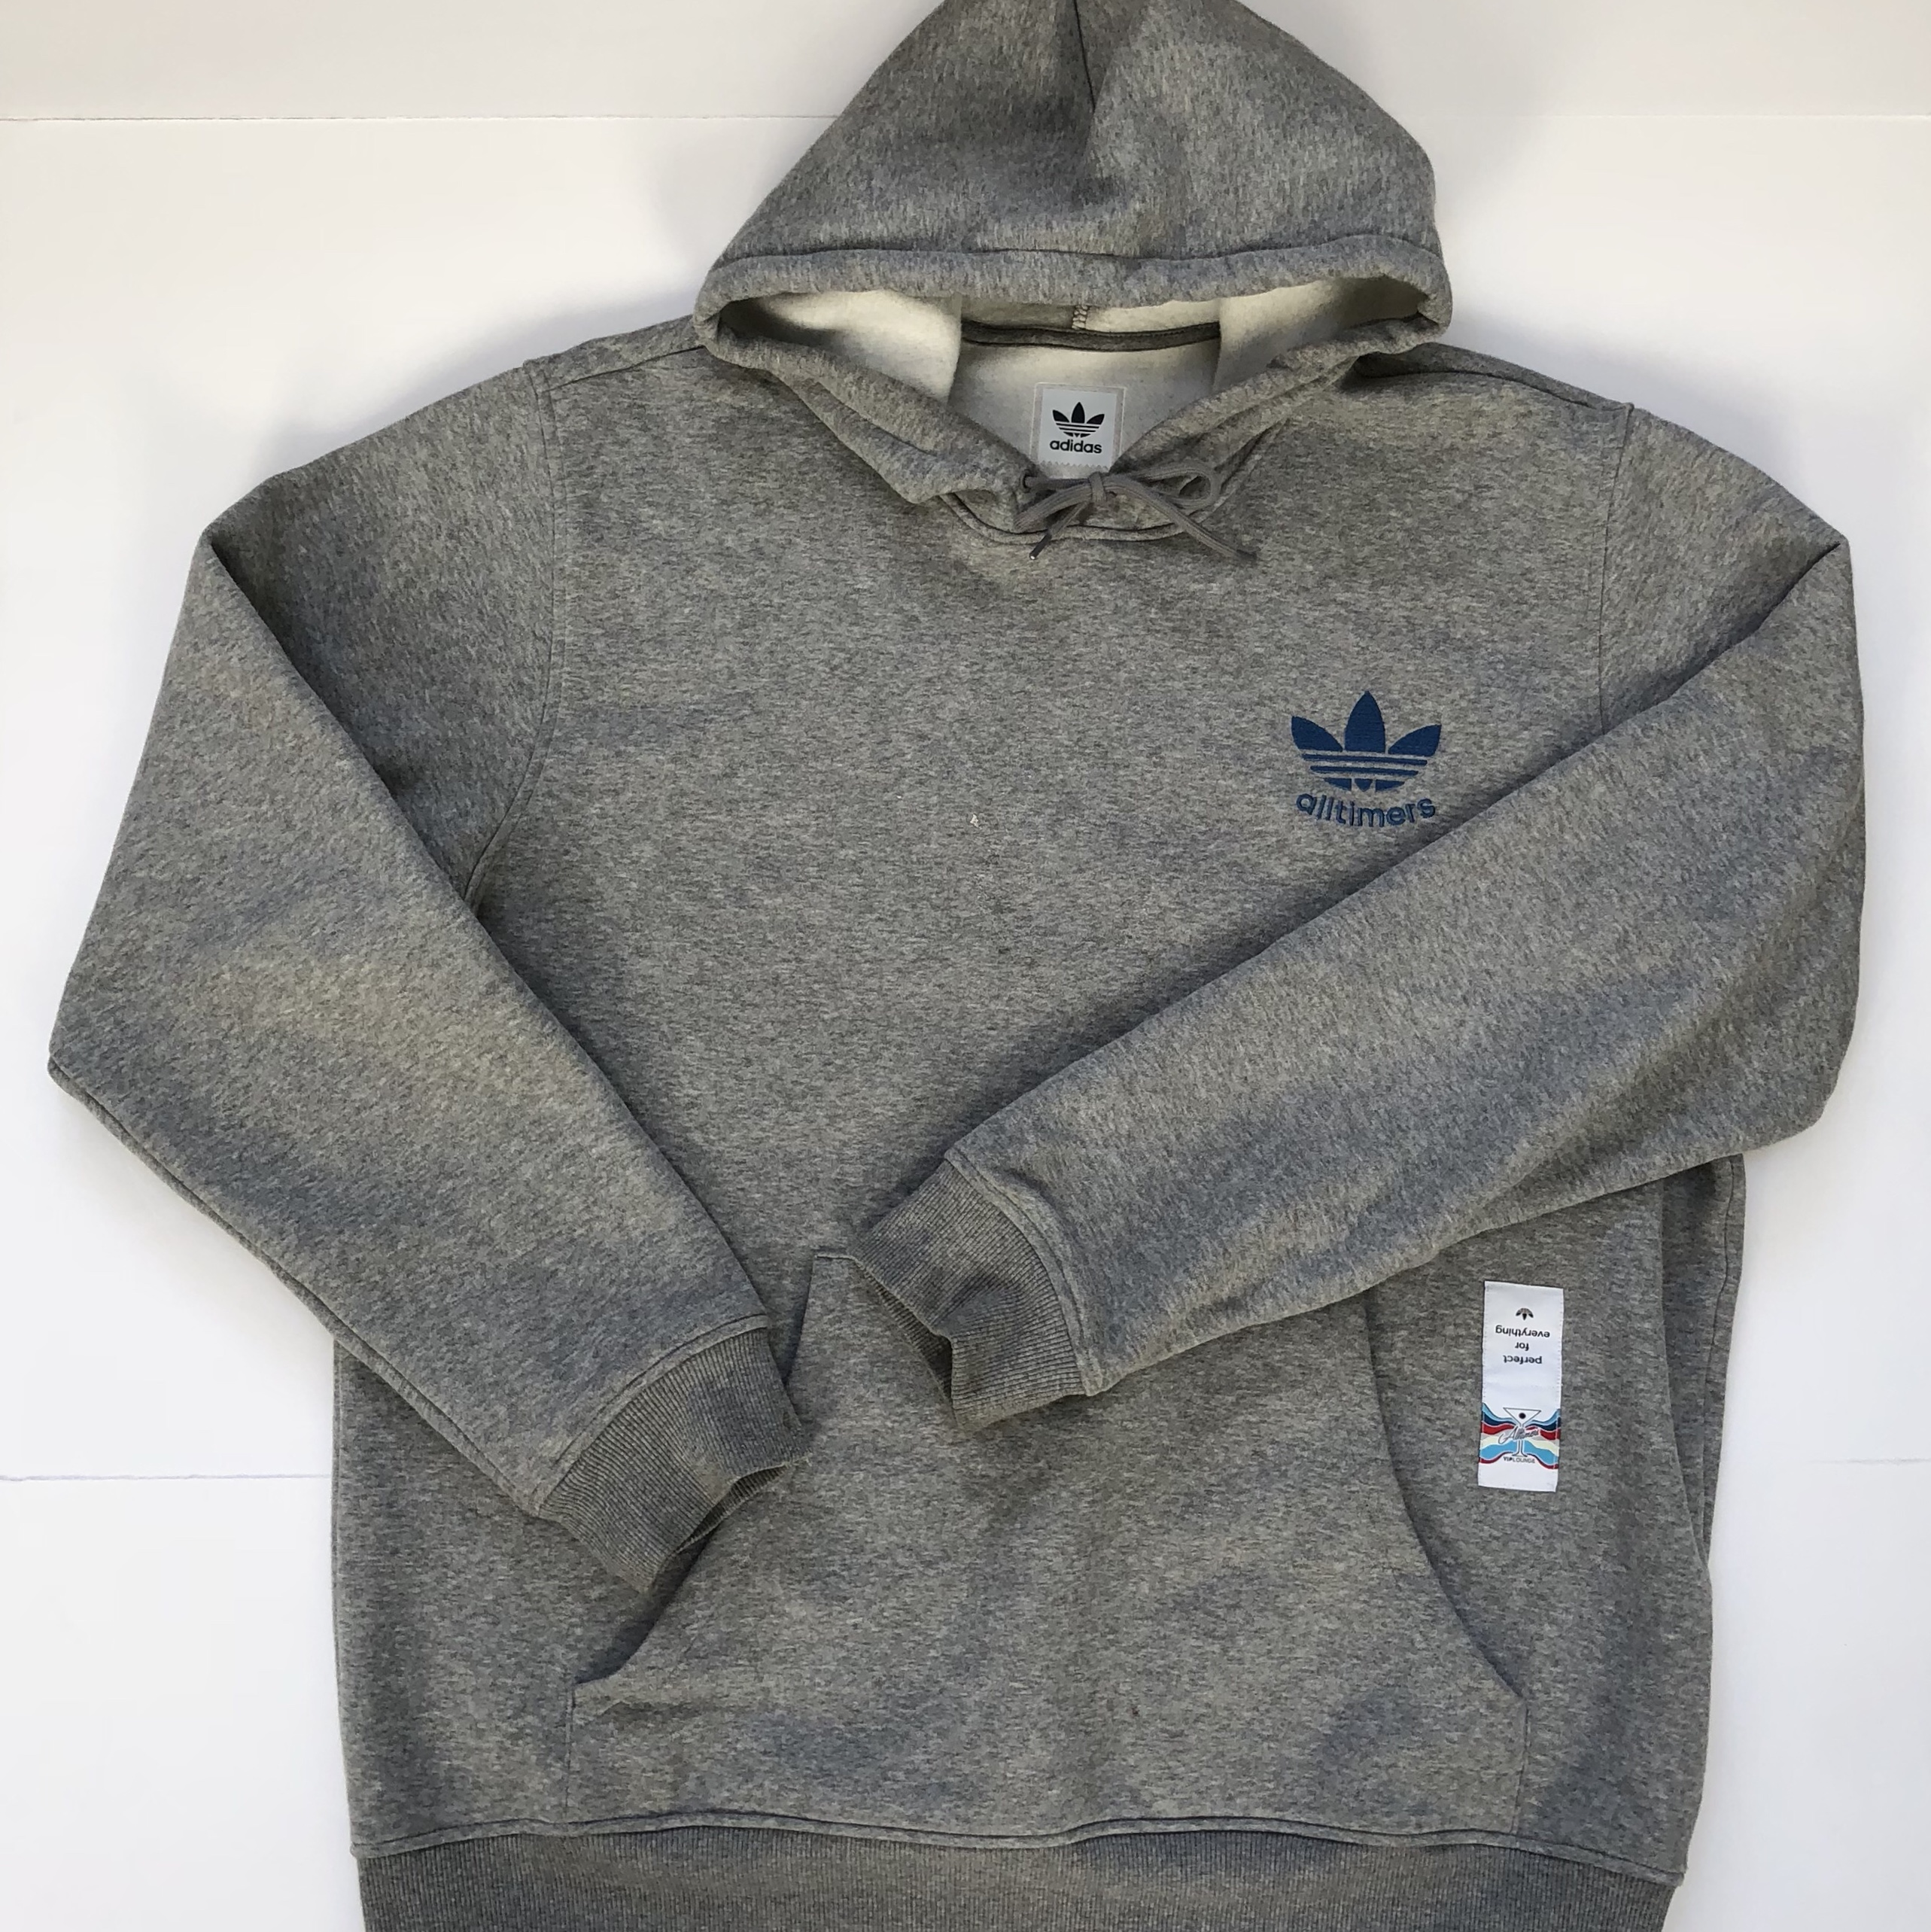 Adidas x Alltimers hoodie. Great condition I barely Depop